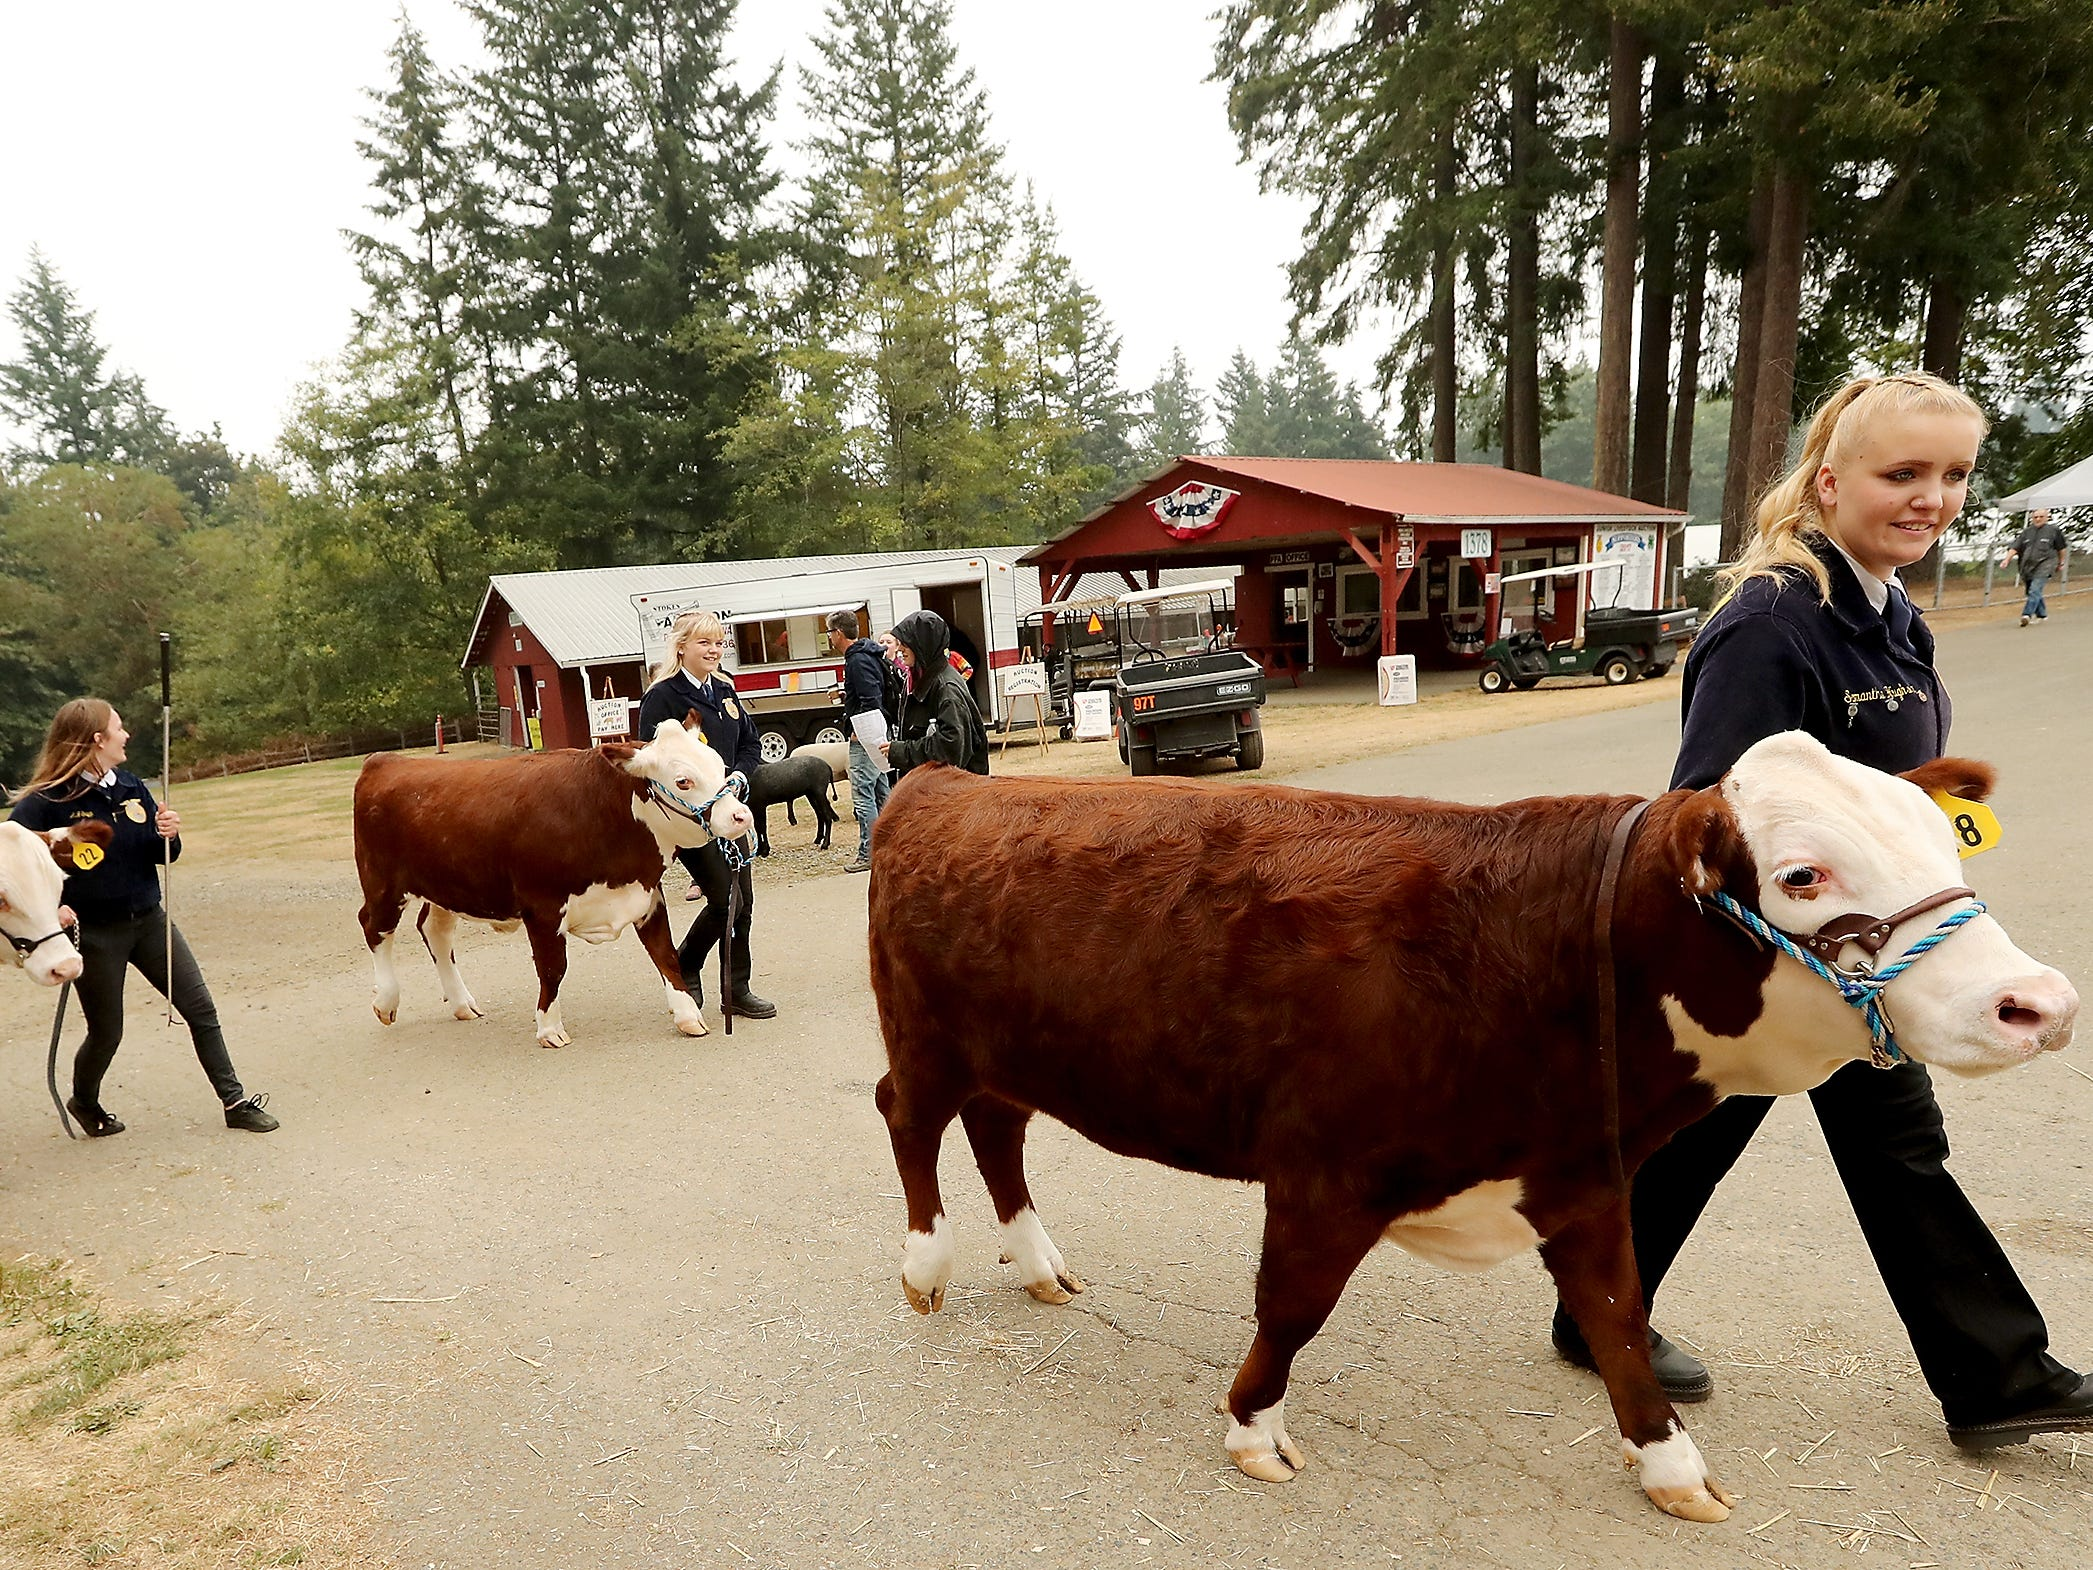 South Kitsap FFA members (left to right) AJ Shipp with steer Tucker and Chelsea Hughson with steer Champ and Samantha Hughson with steer Harold, walk back tot he barn after the livestock auction at the Kitsap County Fair & Stampede on Saturday, August 25. 2018.